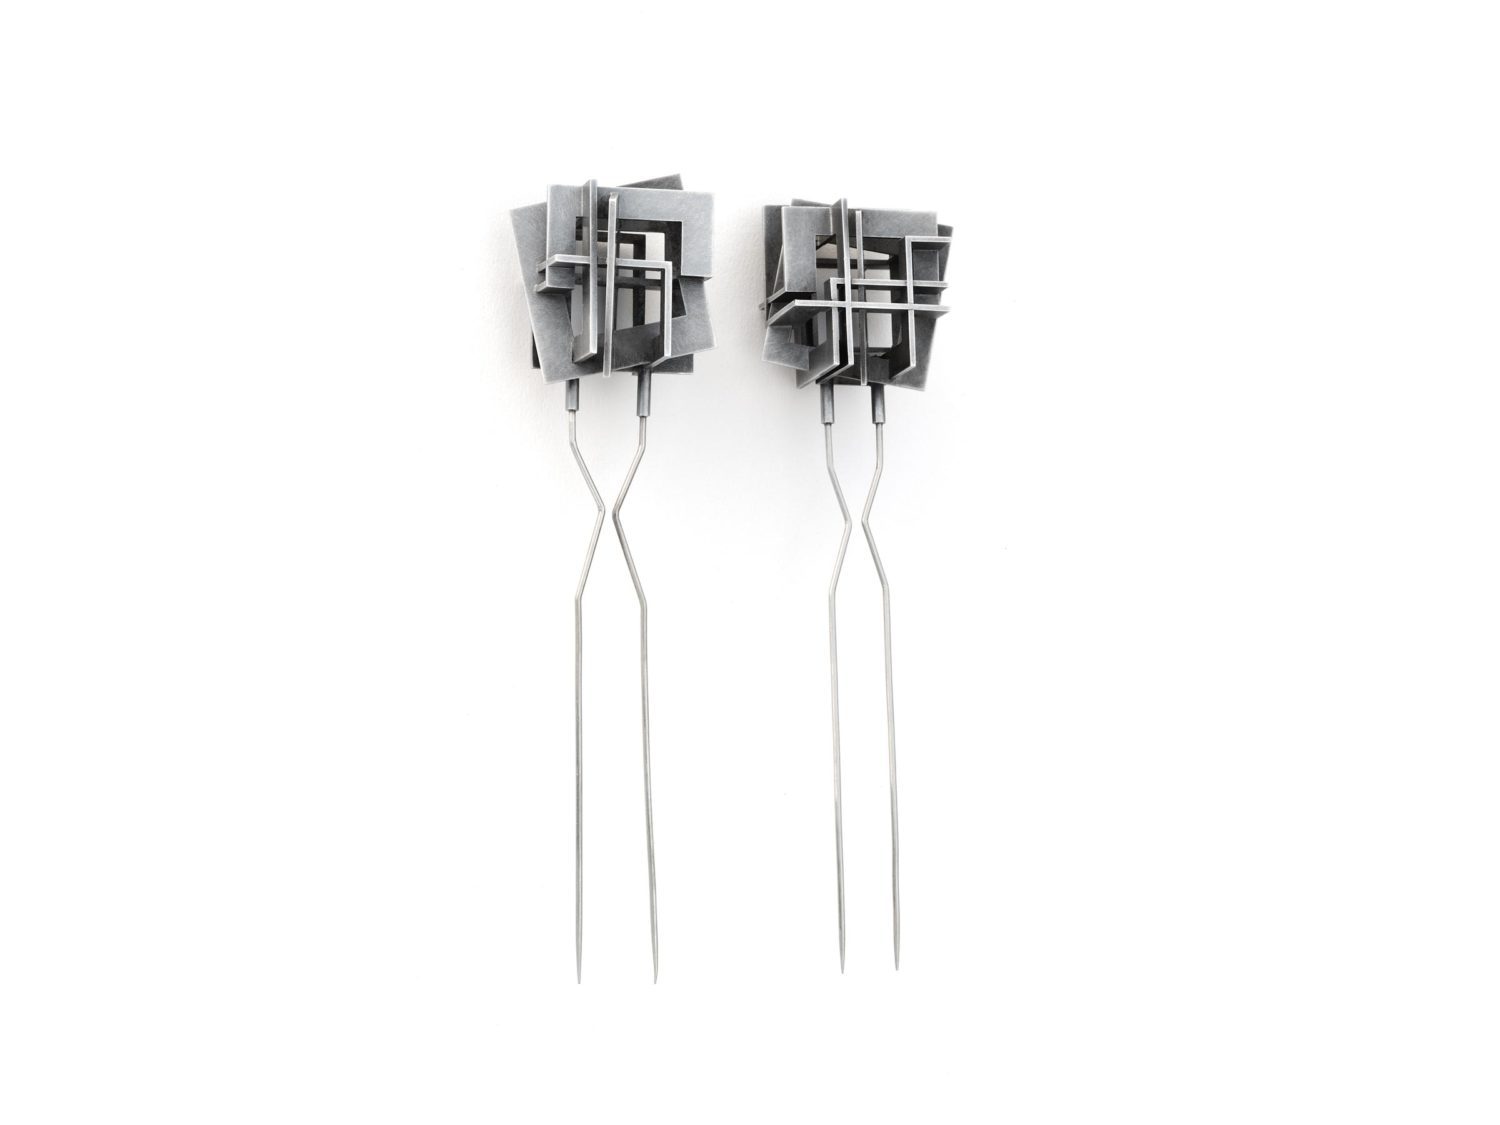 Brooches, oxidized silver, stainless steel, 2002